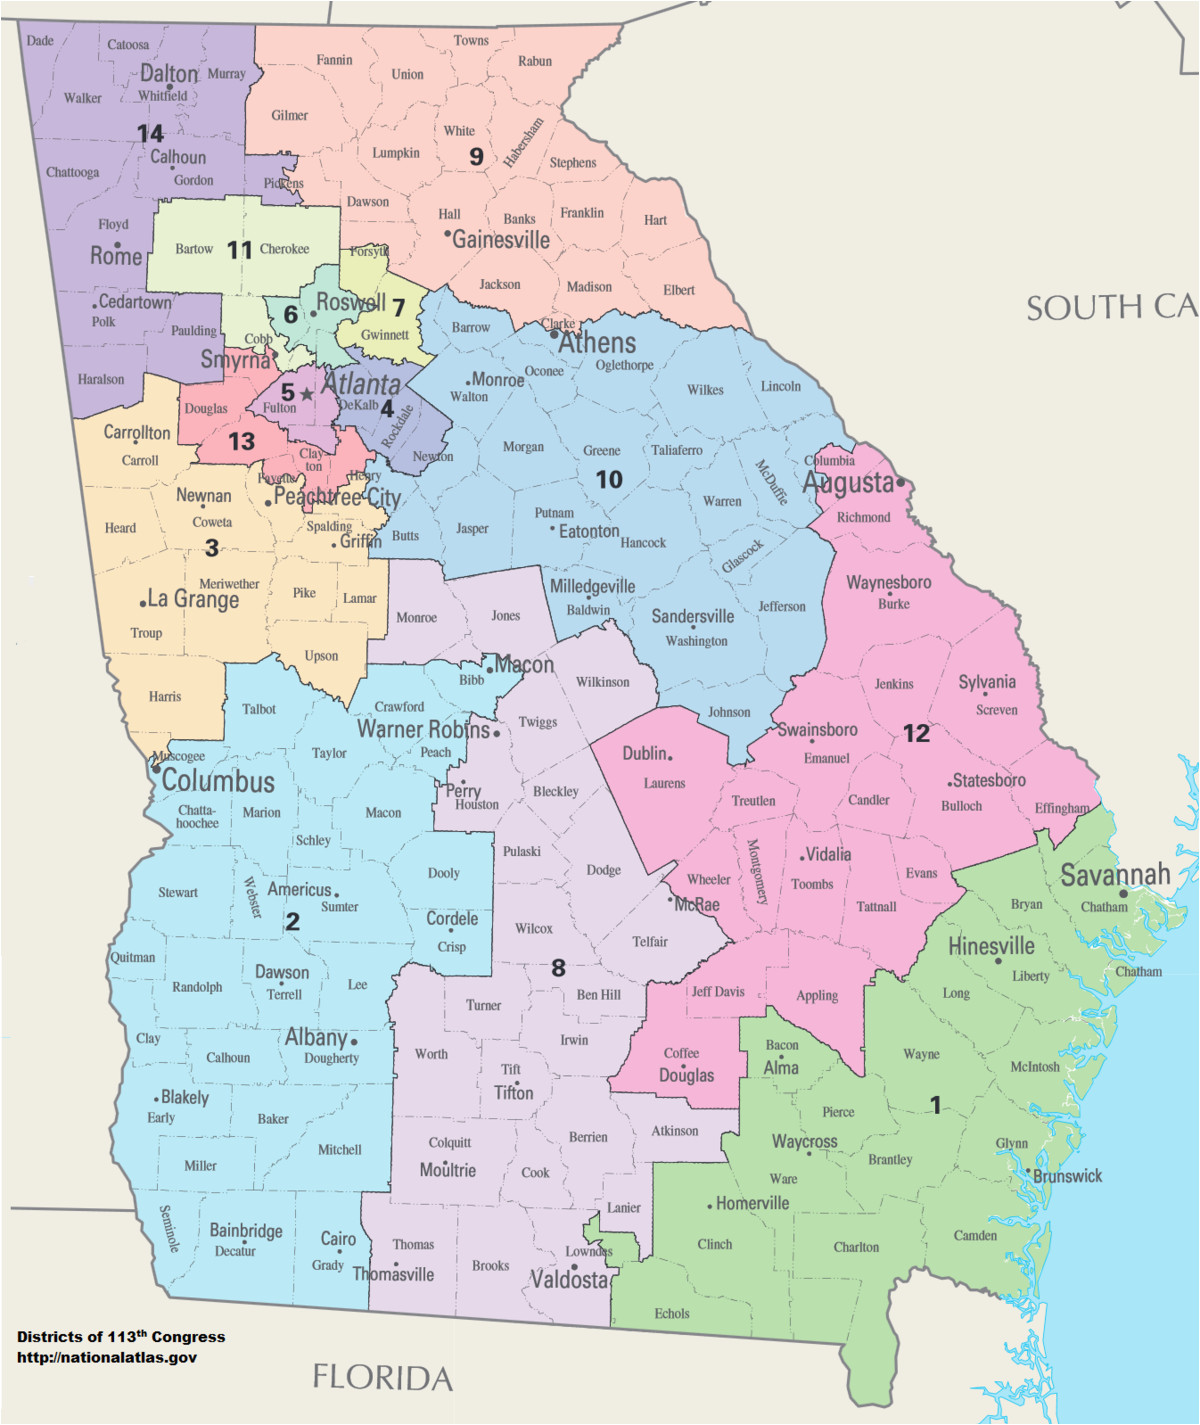 Map Of Cairo Georgia.Map Of Cairo Georgia Georgia S Congressional Districts